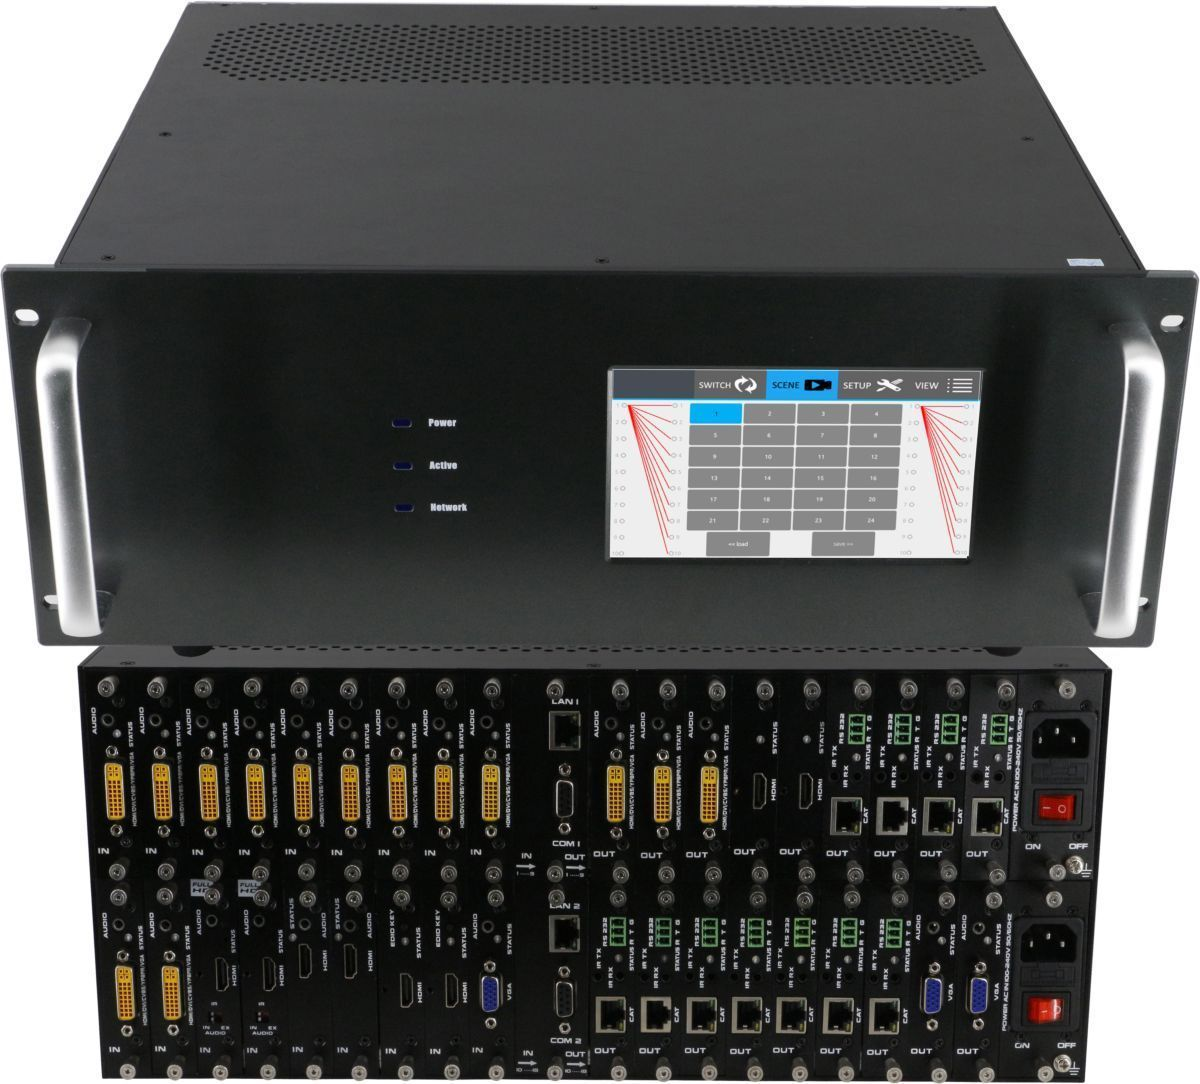 18x12 HDMI Matrix Switcher with a Touchscreen